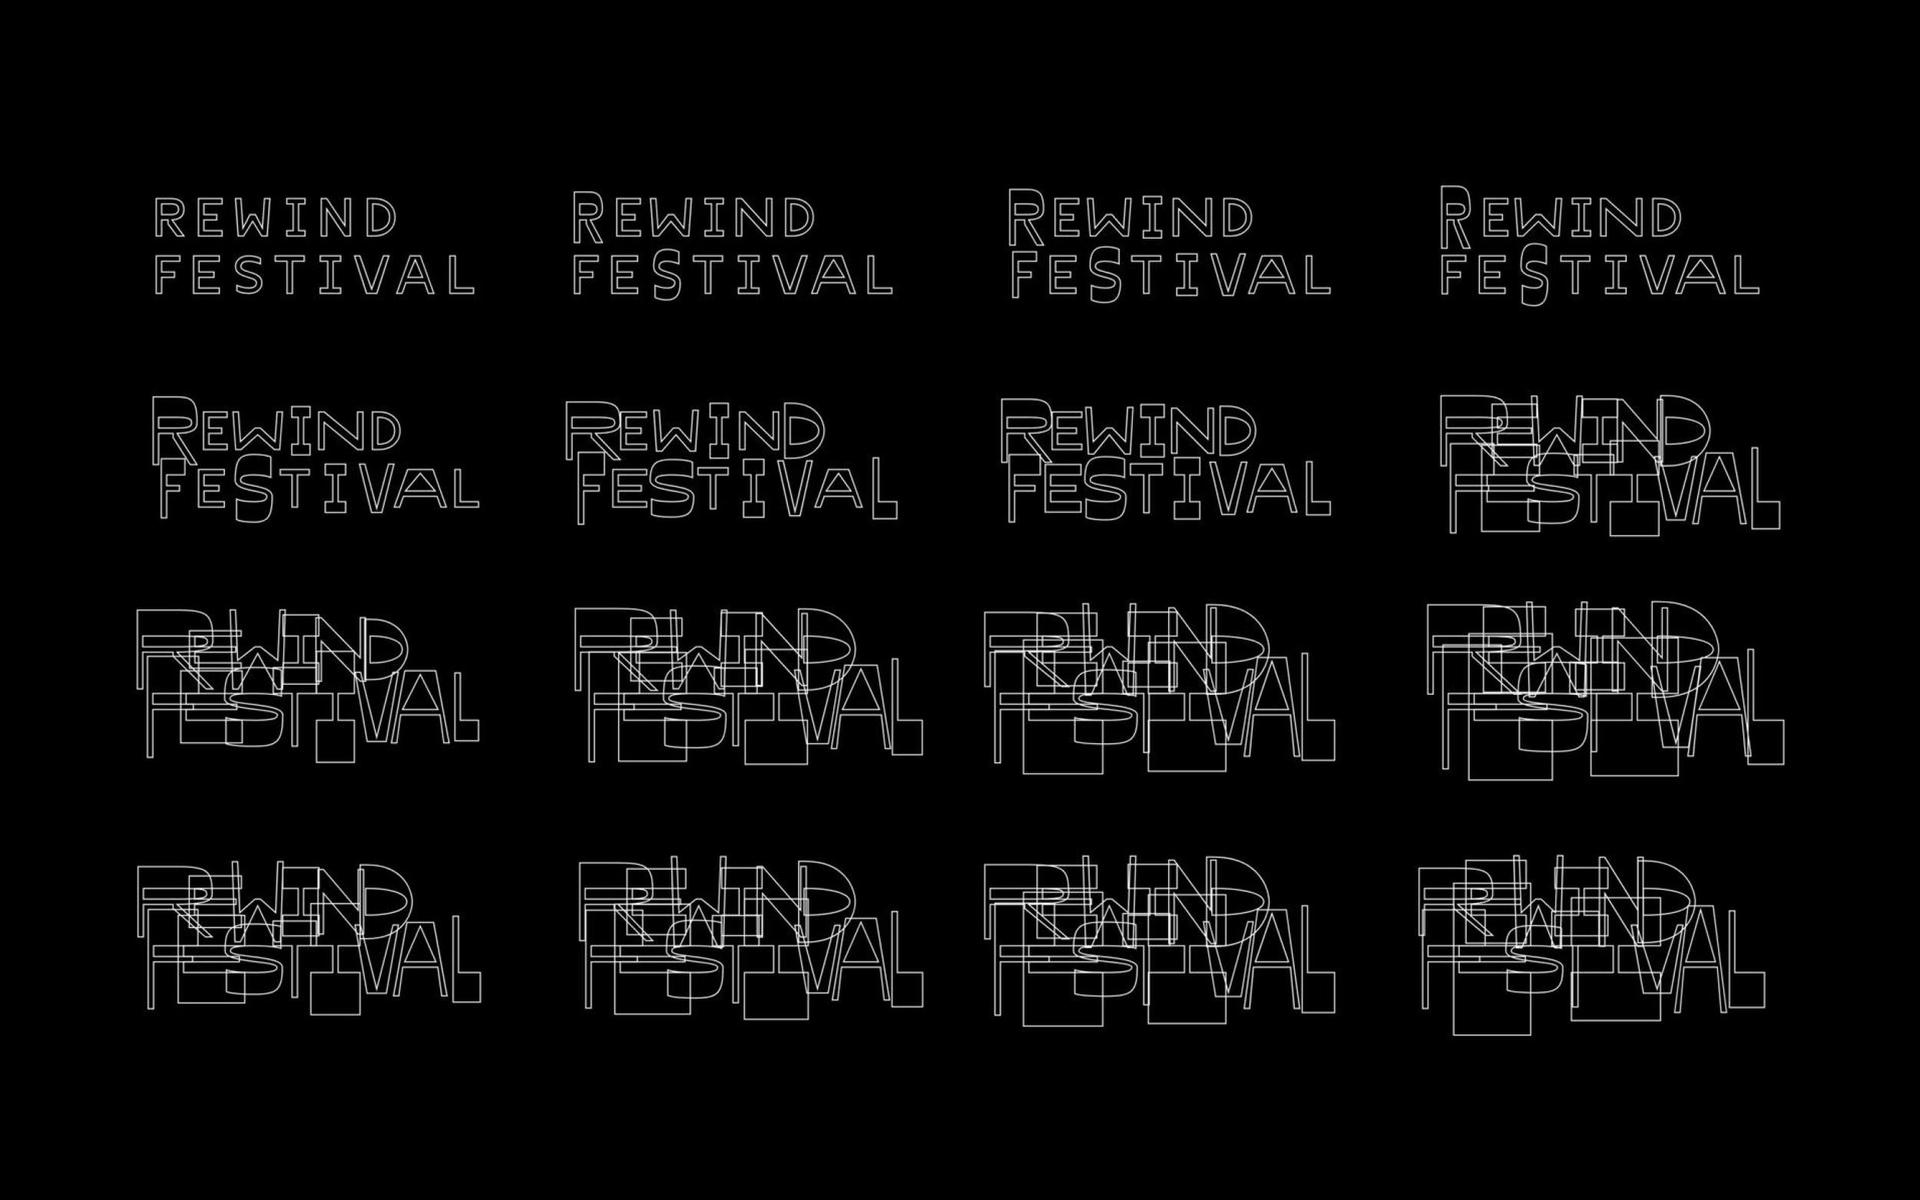 Sound-responsive typography for Rewind Festival